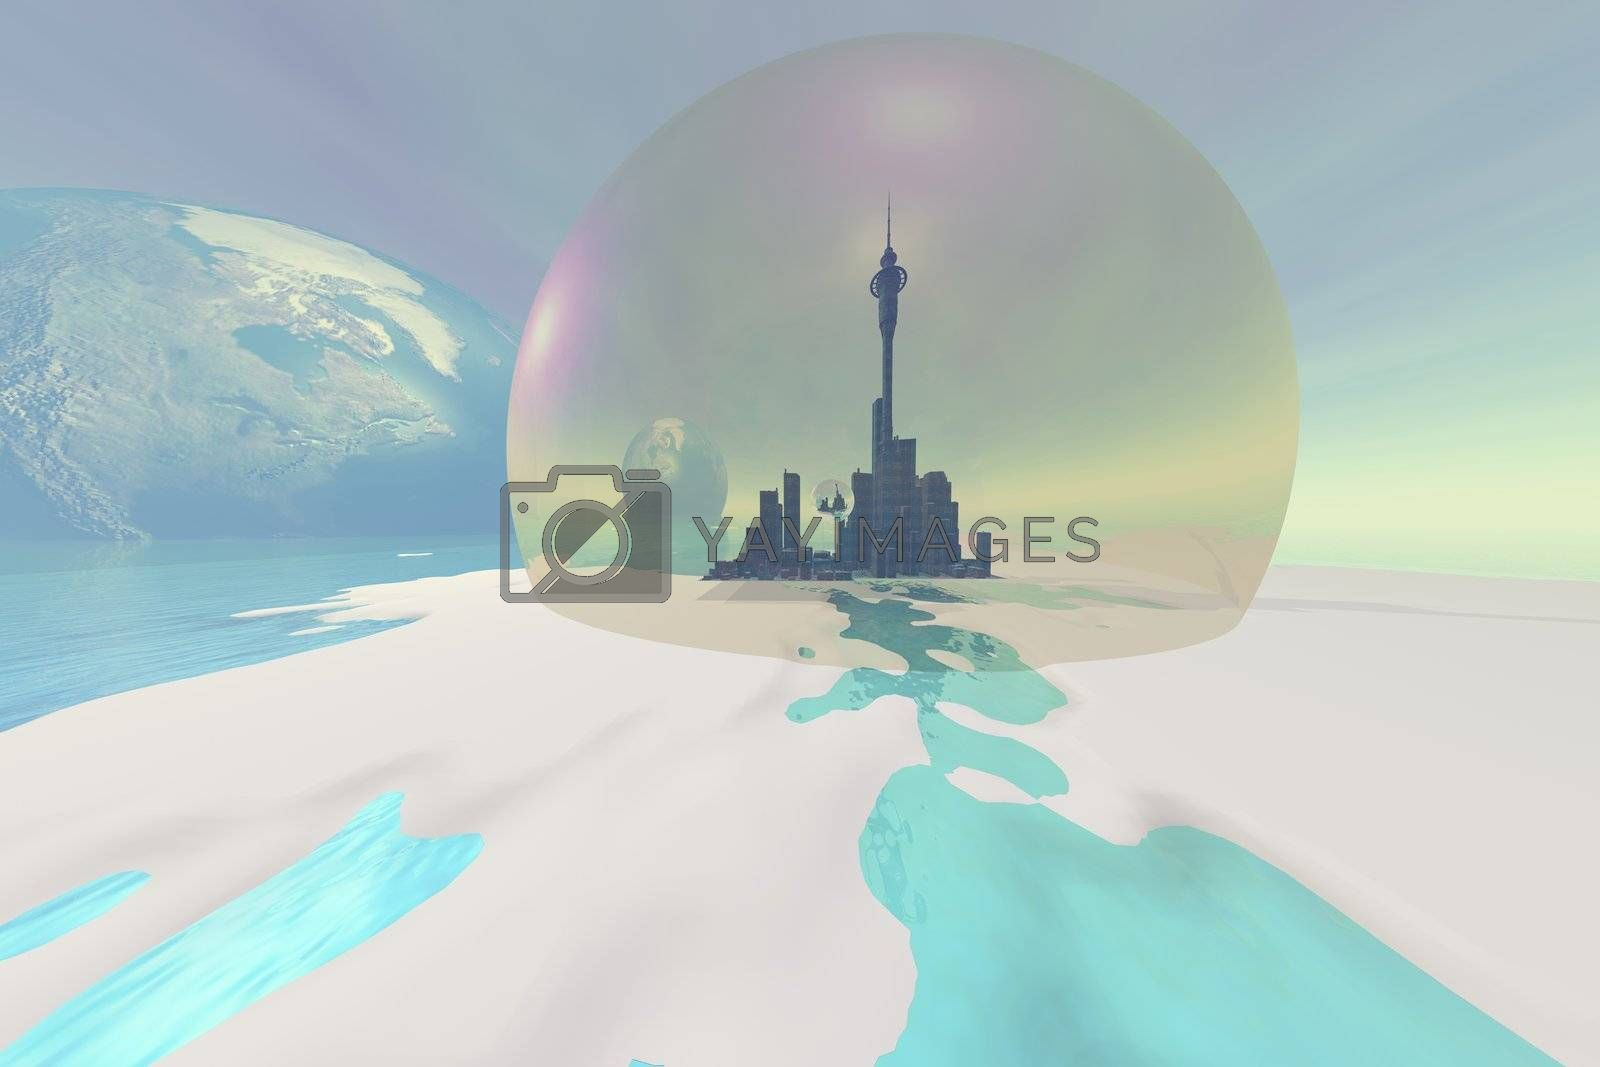 Terraforming the moon with a new city under the protection of a dome.